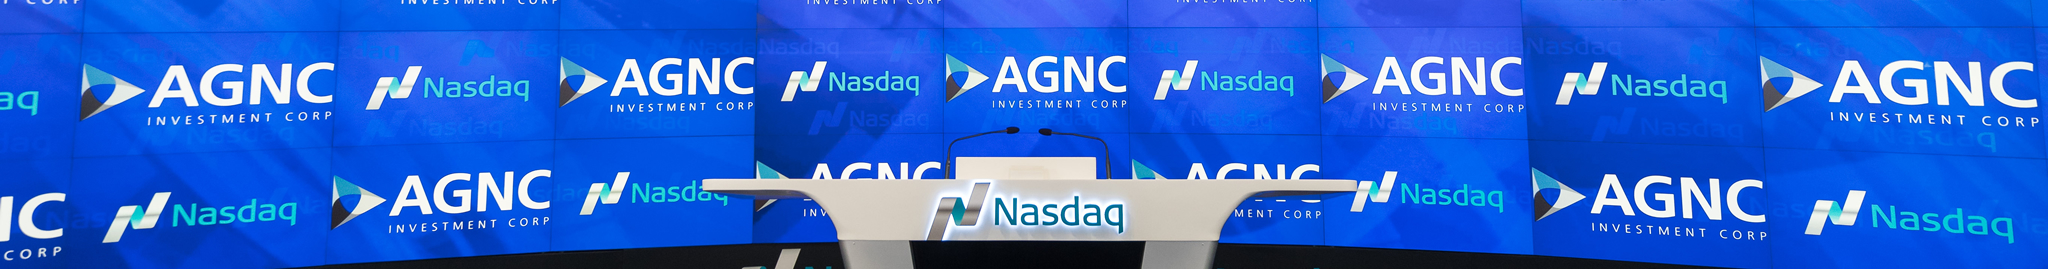 Investor Overview Agnc Investment Corp